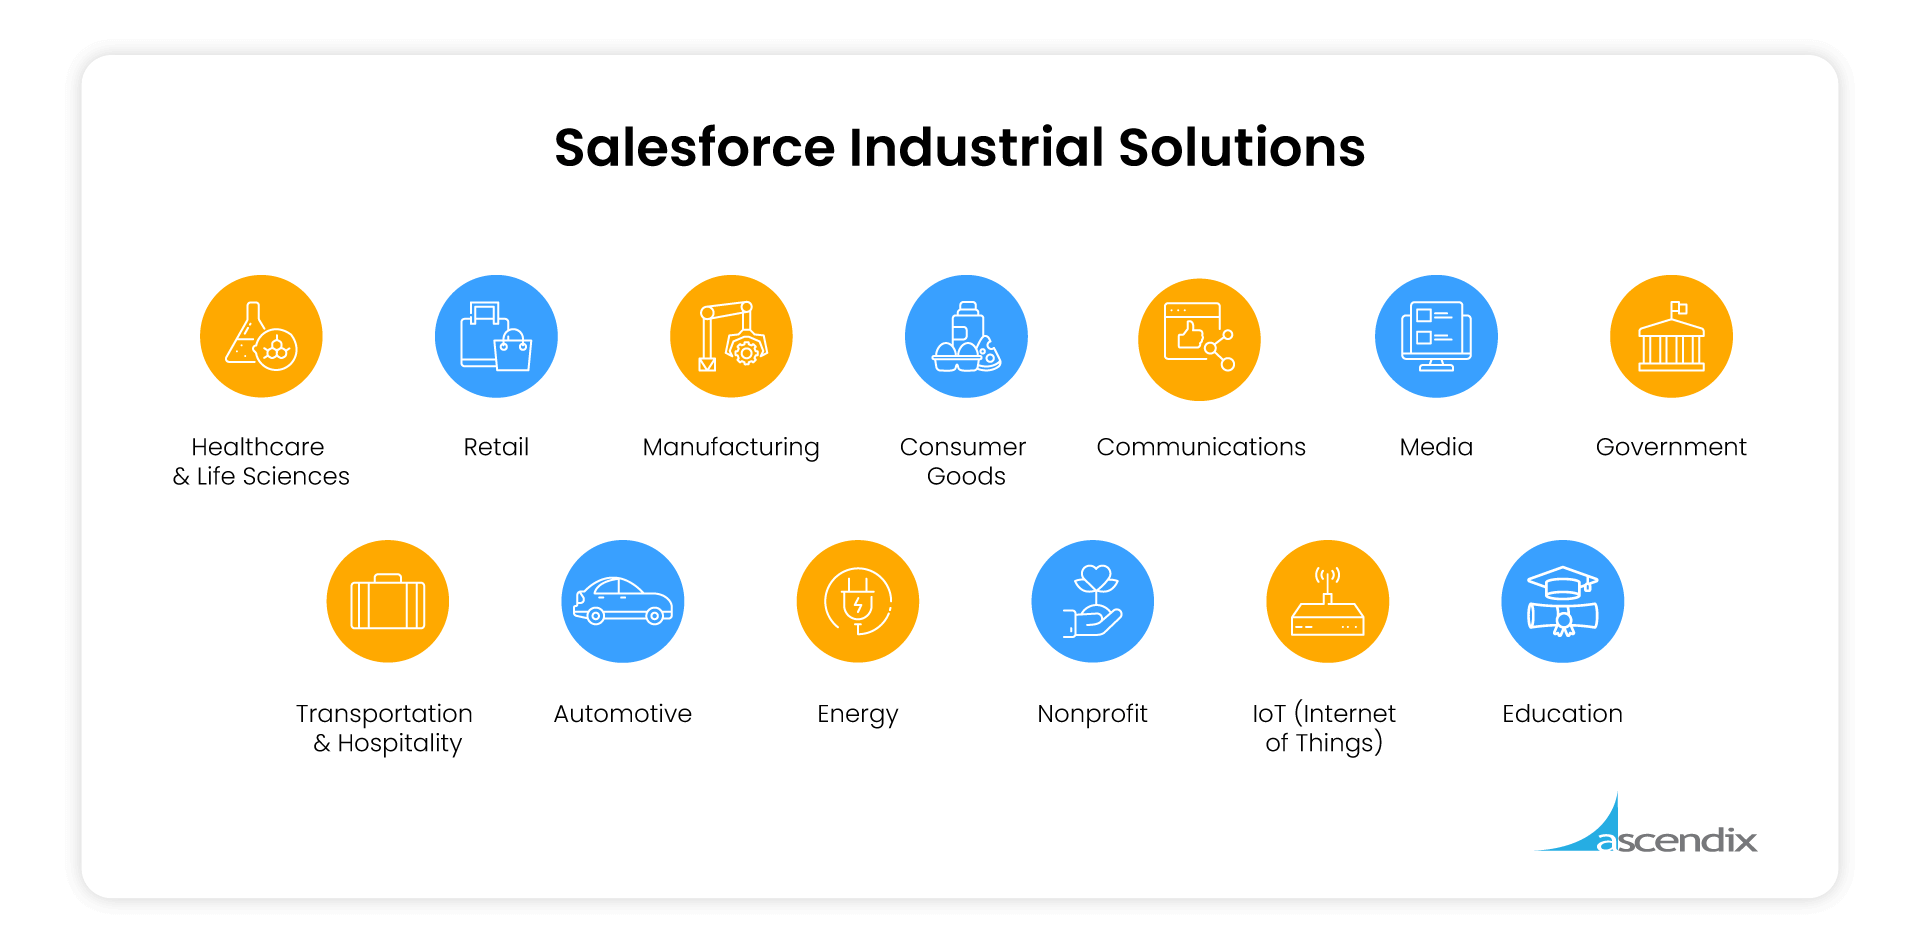 Salesforce Industrial Solutions